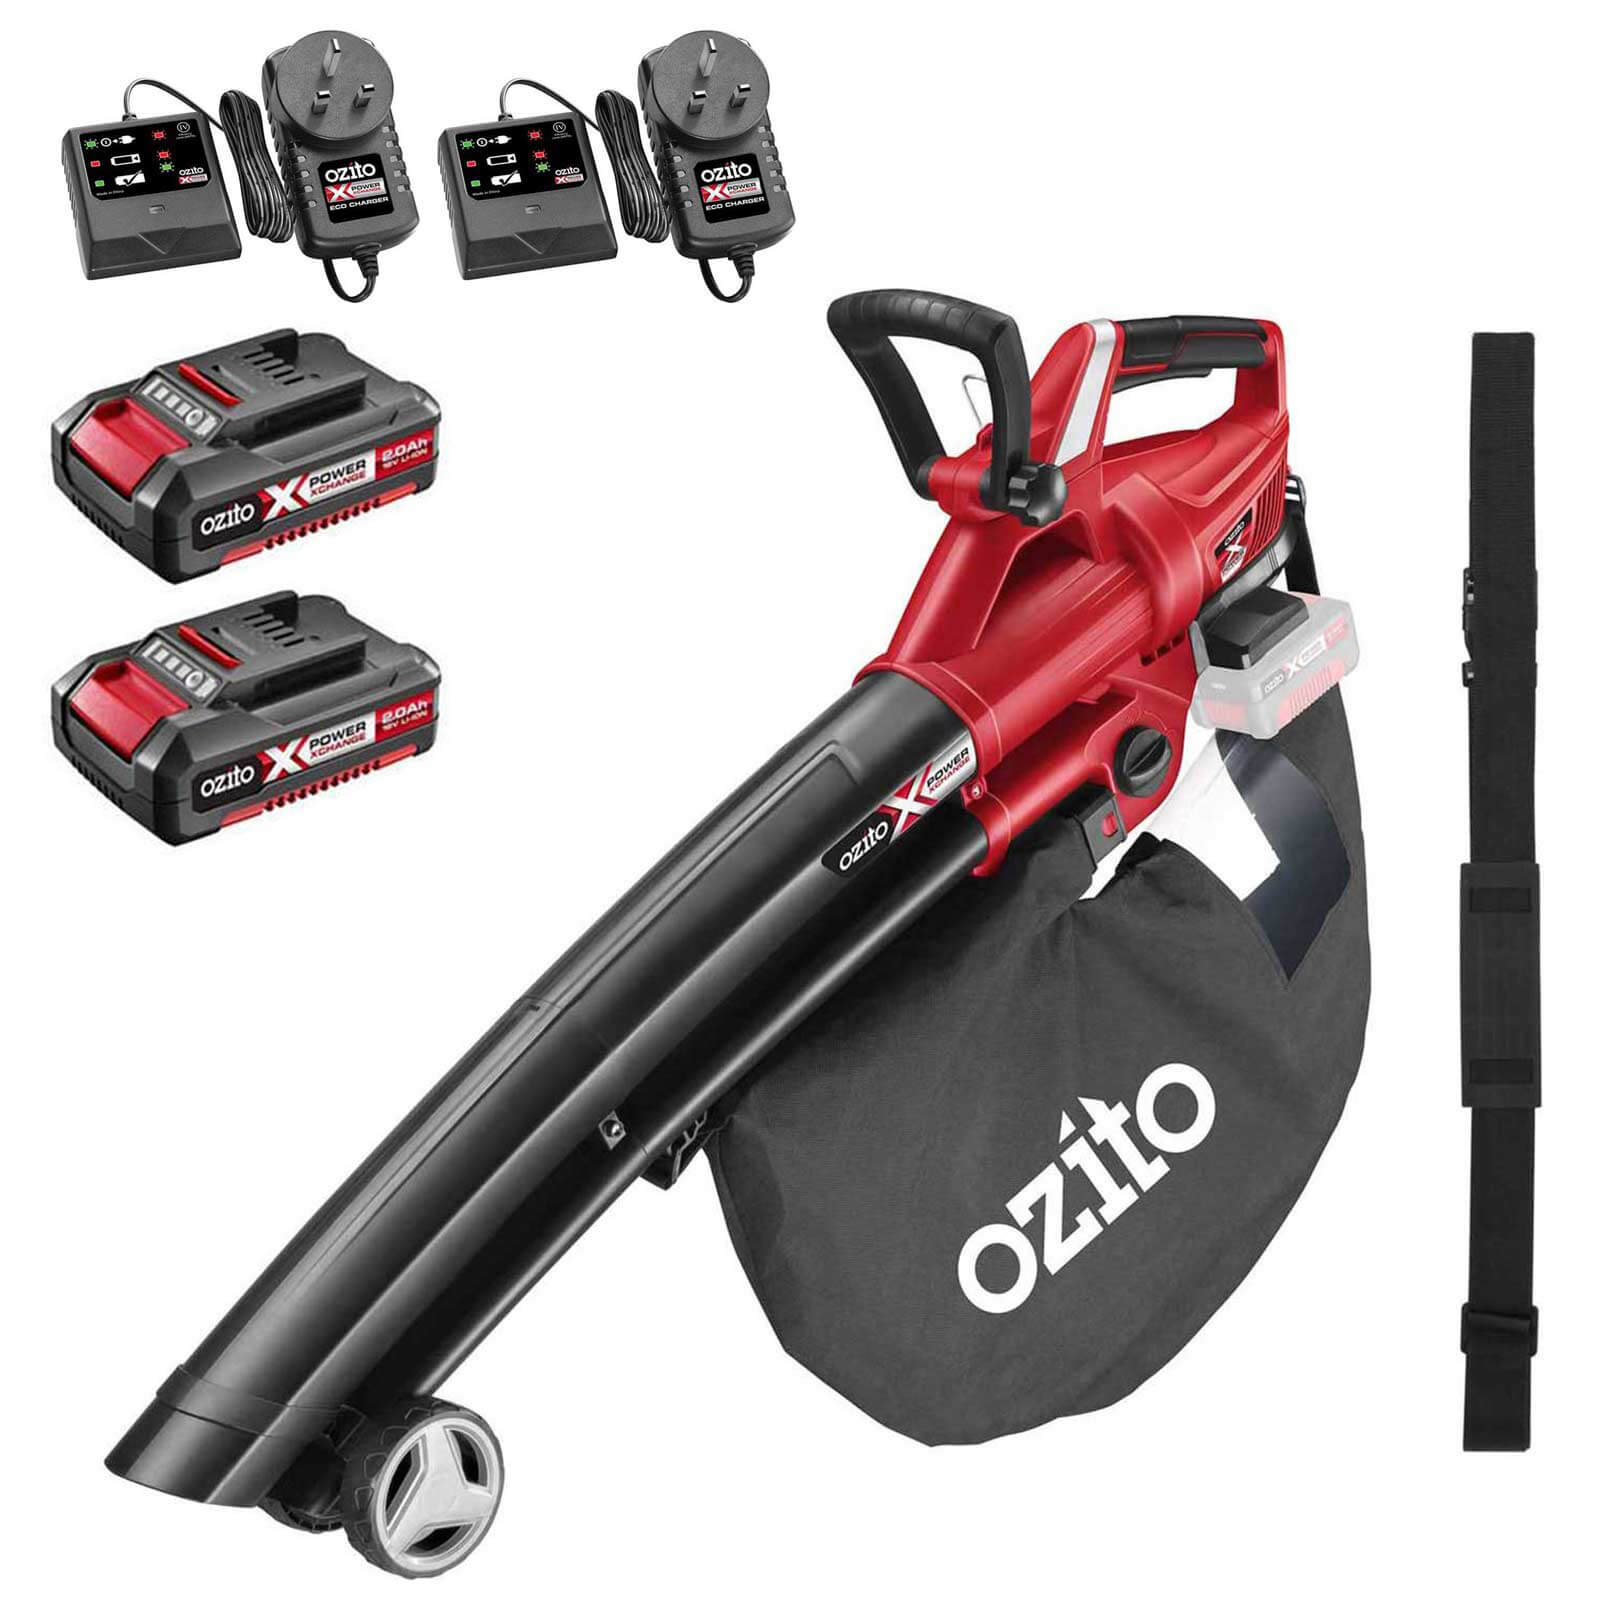 Ozito PXCBLVS 36v Cordless Brushless Garden Vacuum and Leaf Blower (Uses 2 x 18v) 2 x 2ah Li-ion Twin Battery Charger